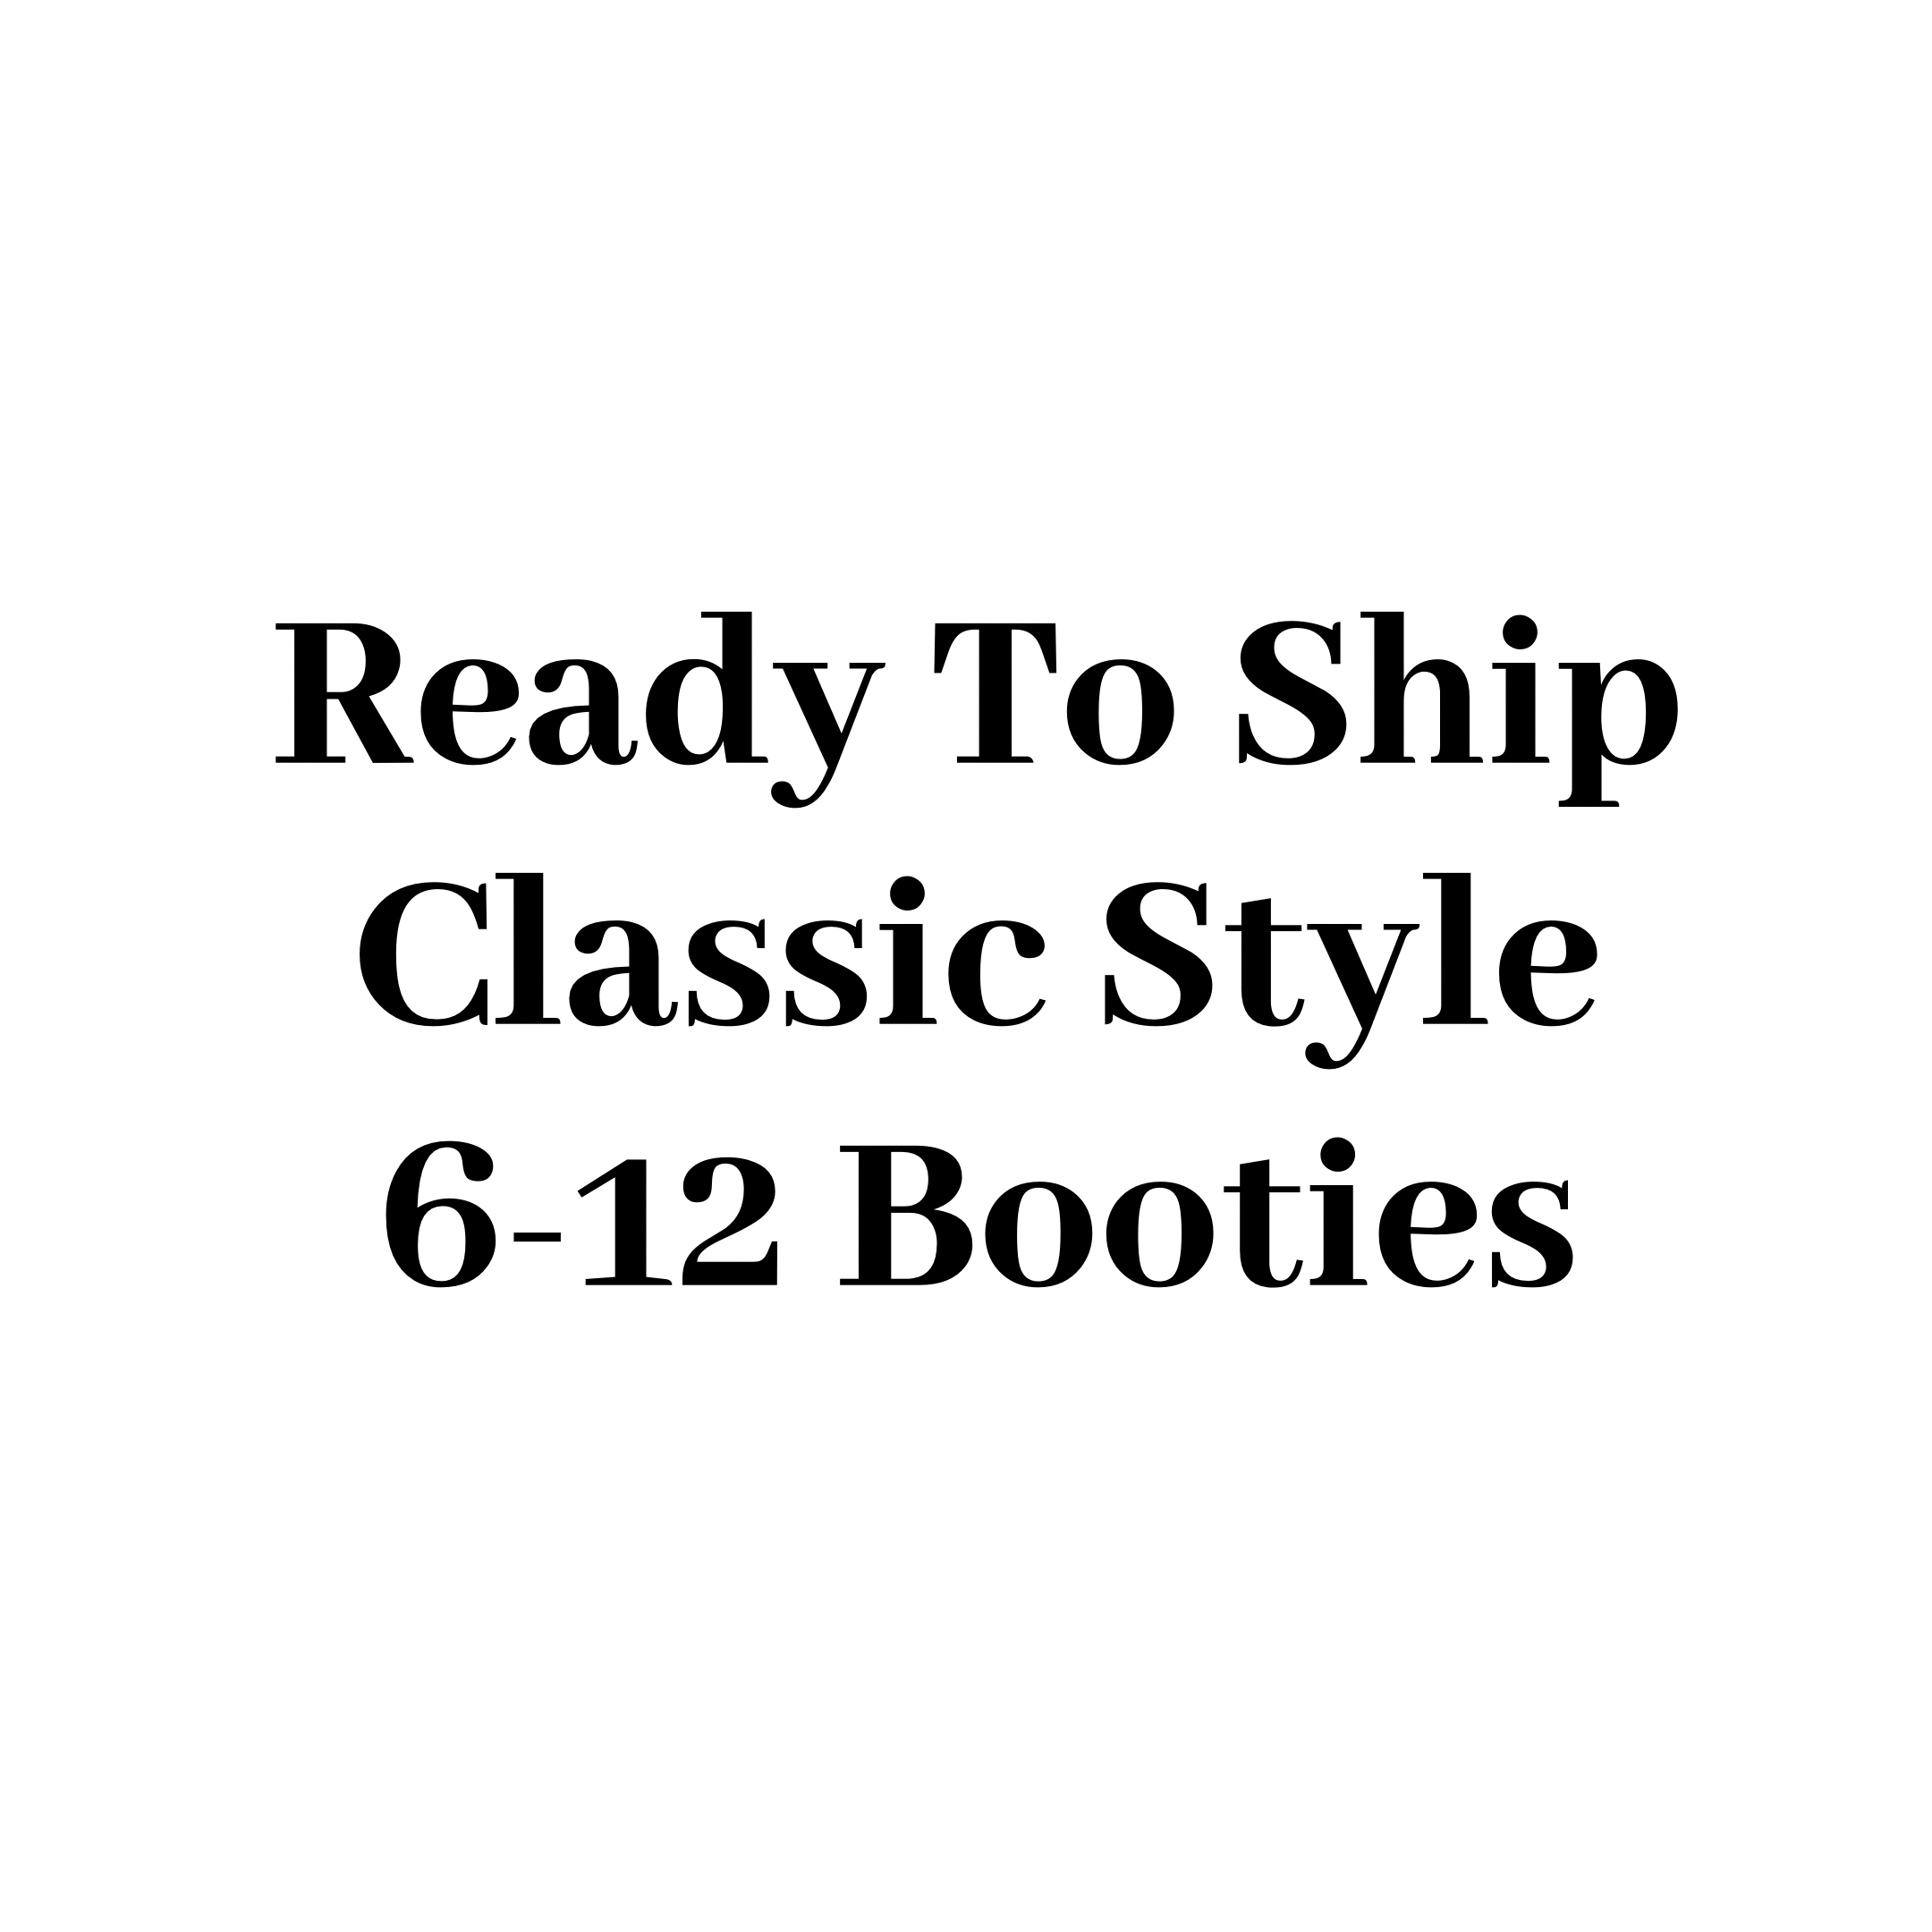 "RTS Classic Style Booties 6-12 months - 5"" Sole"